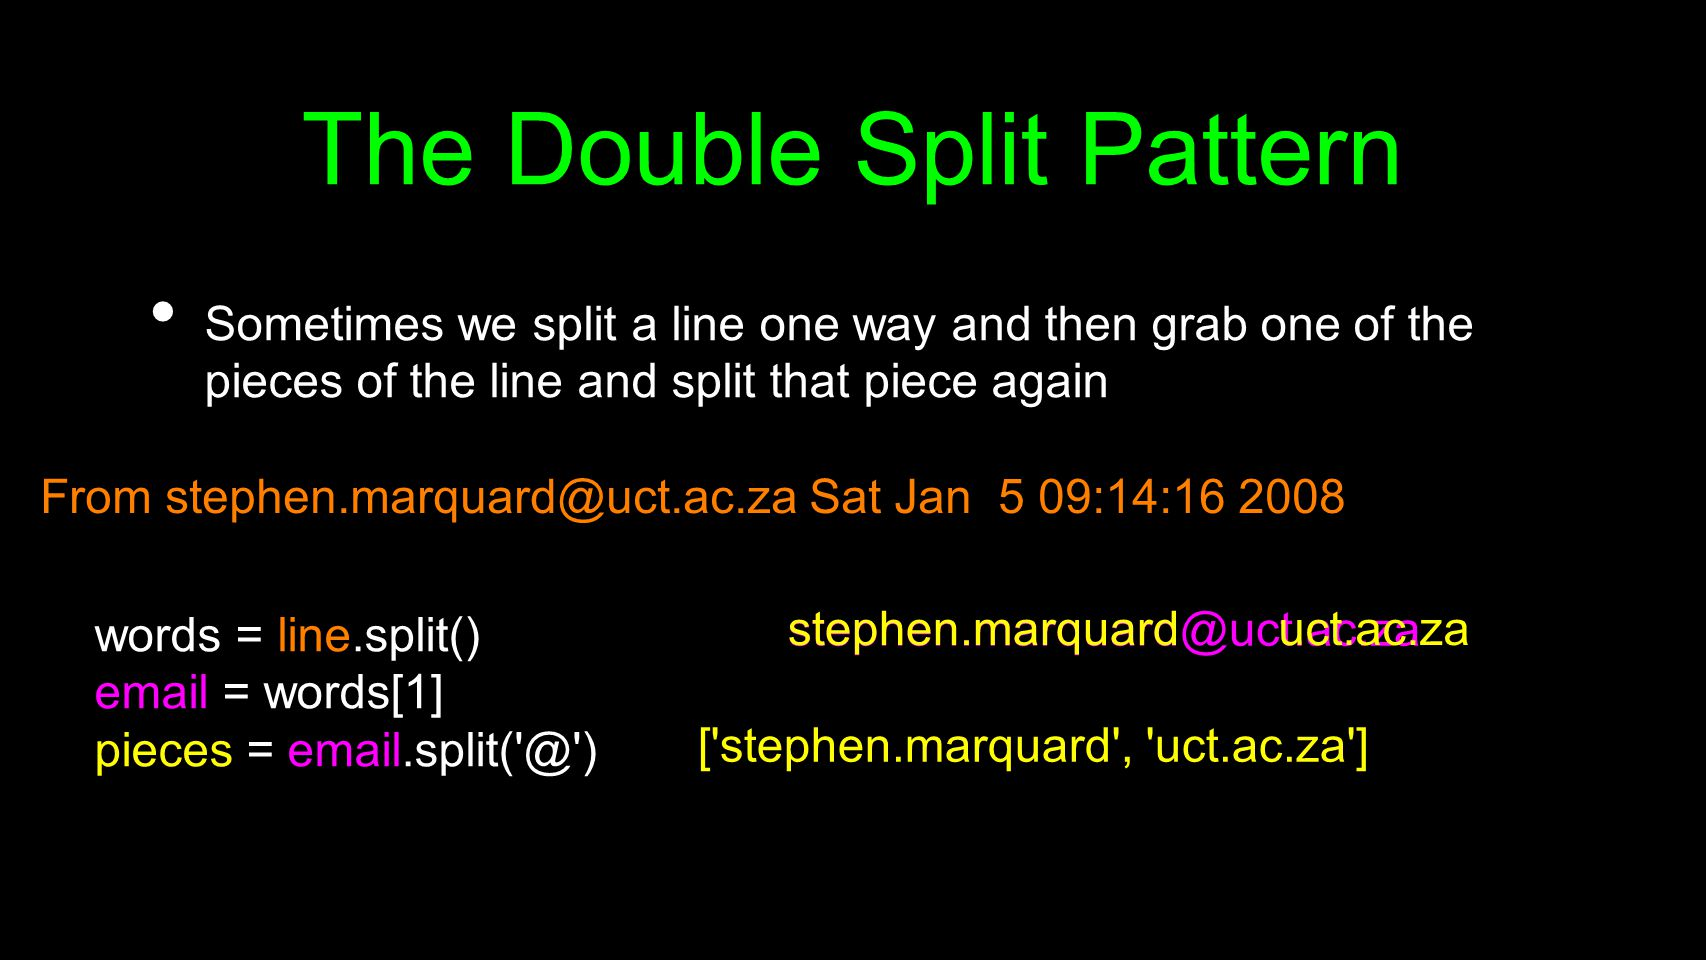 The Double Split Pattern